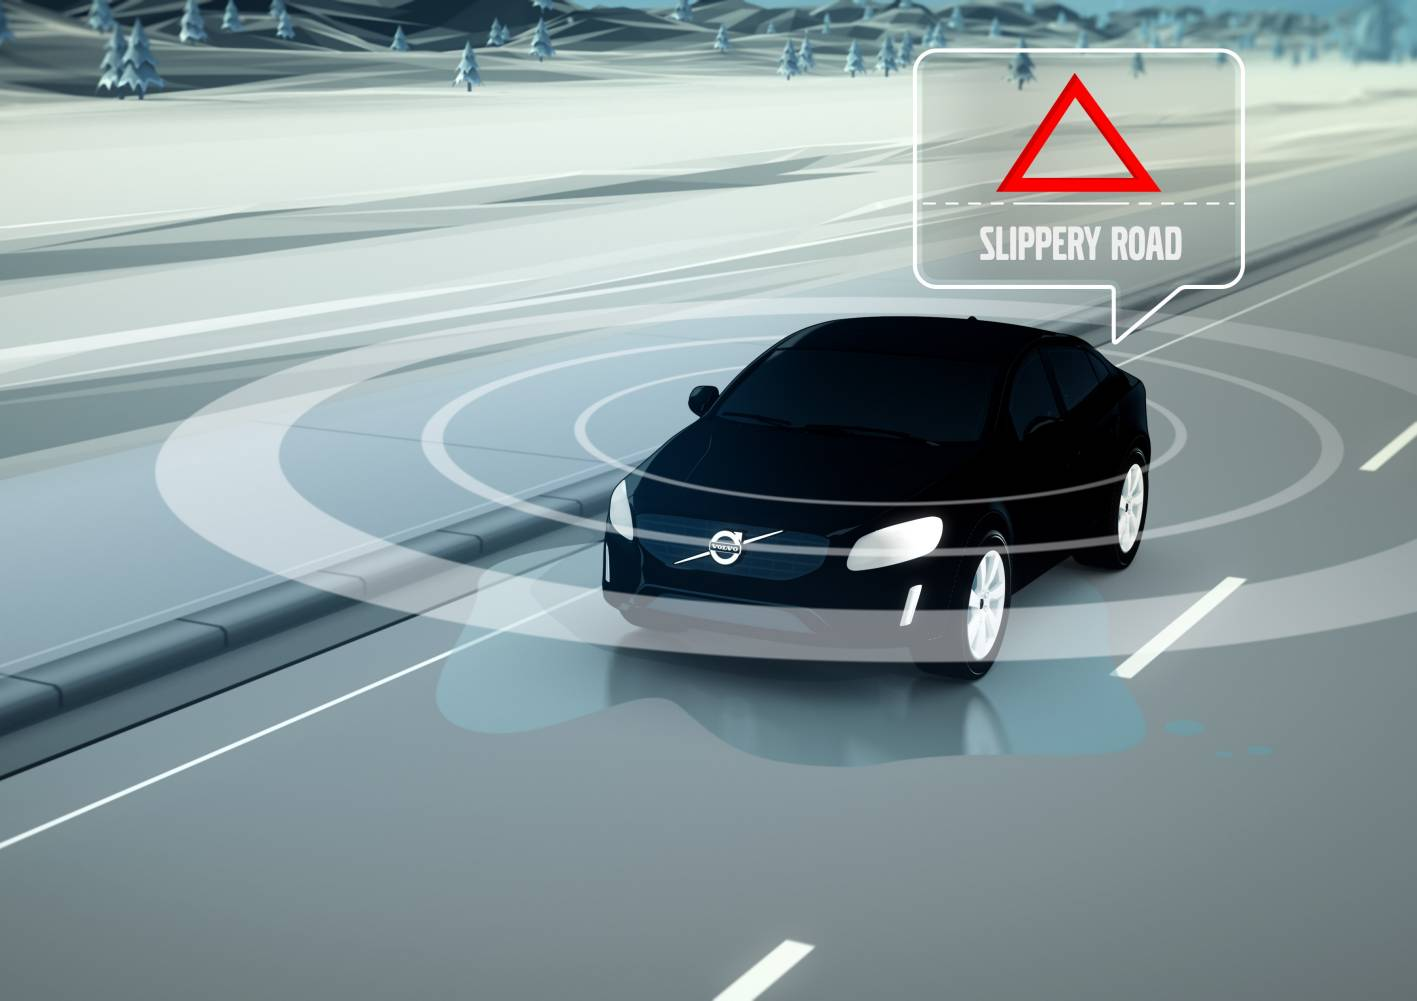 volvo_cloud_road_weather_safety_system_01